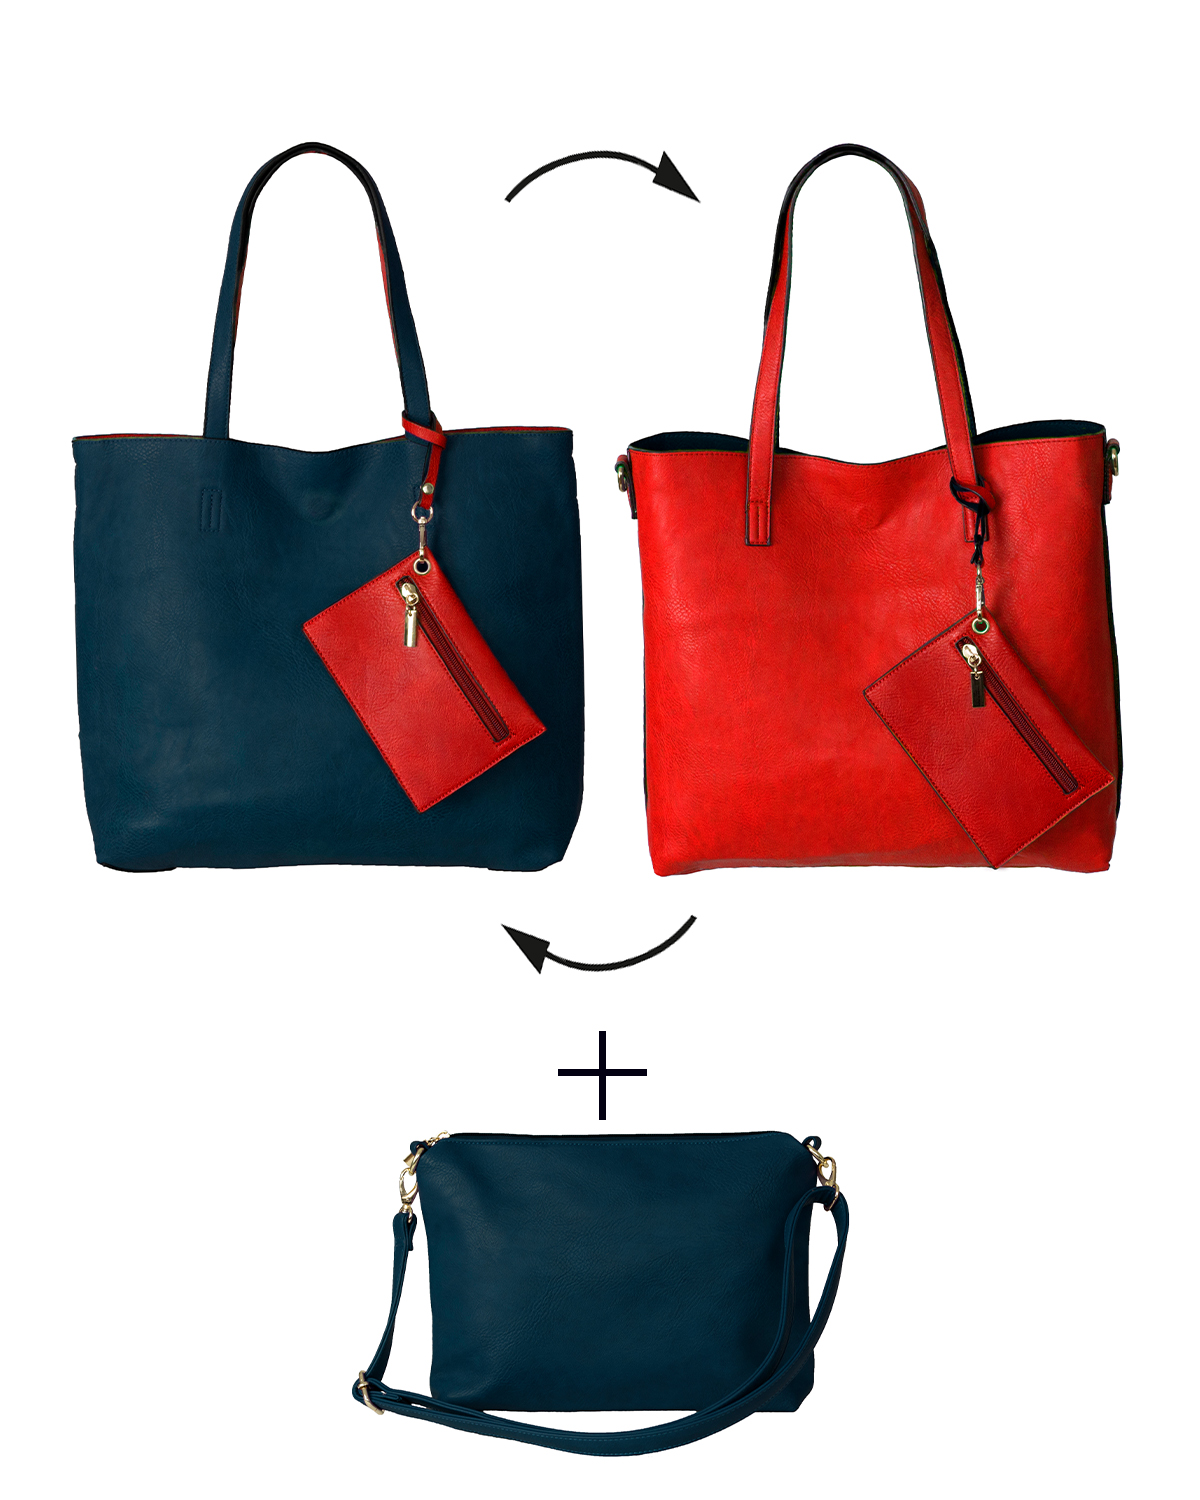 BergsReversible Women's Bag Set Faux Leather Navy/Red